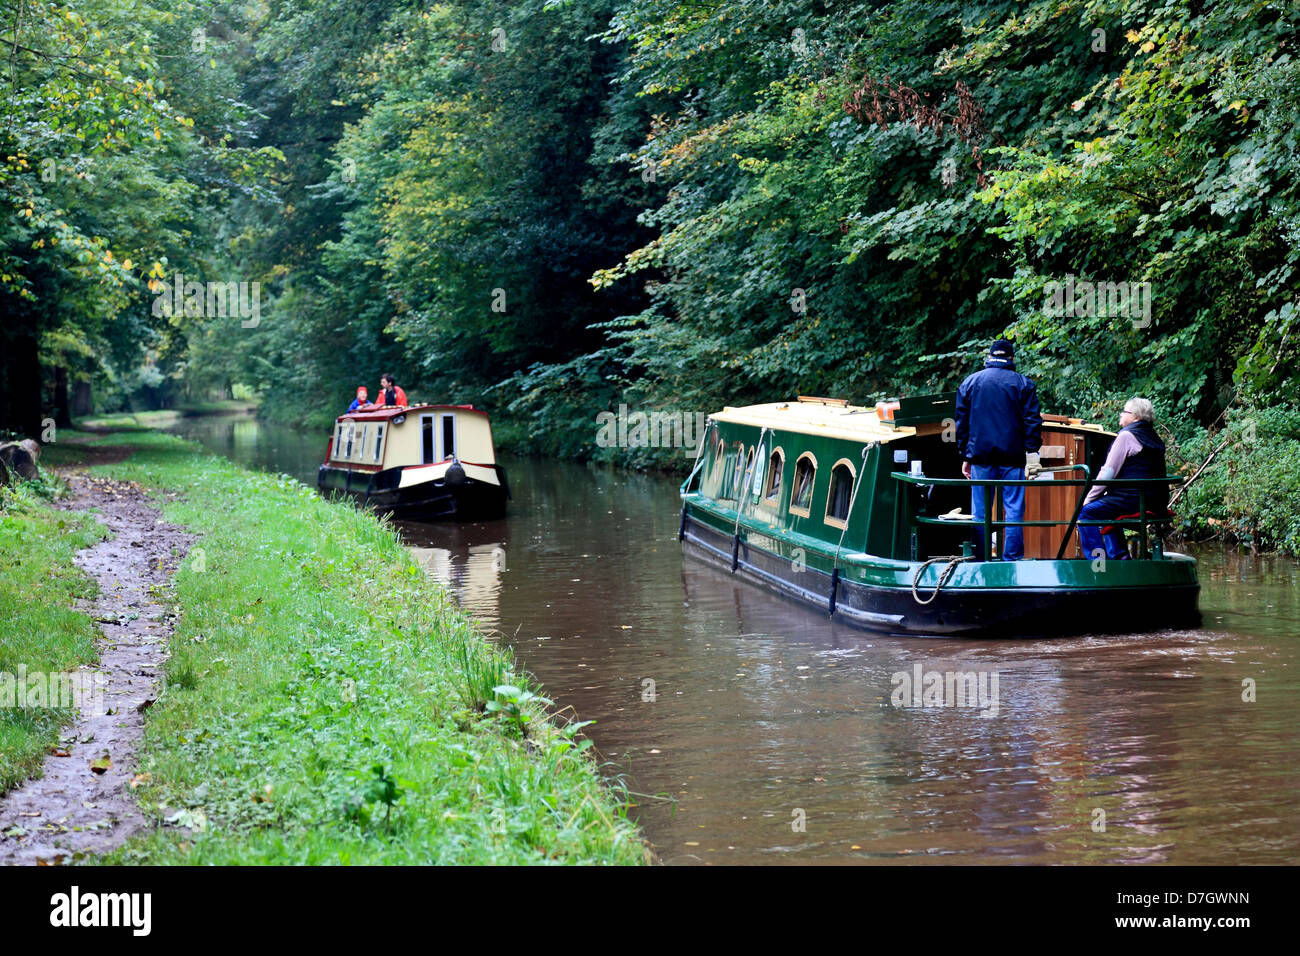 8883. Monmouthshire & Brecon Canal near Talybont-on-Usk, Powys, Wales, UK - Stock Image